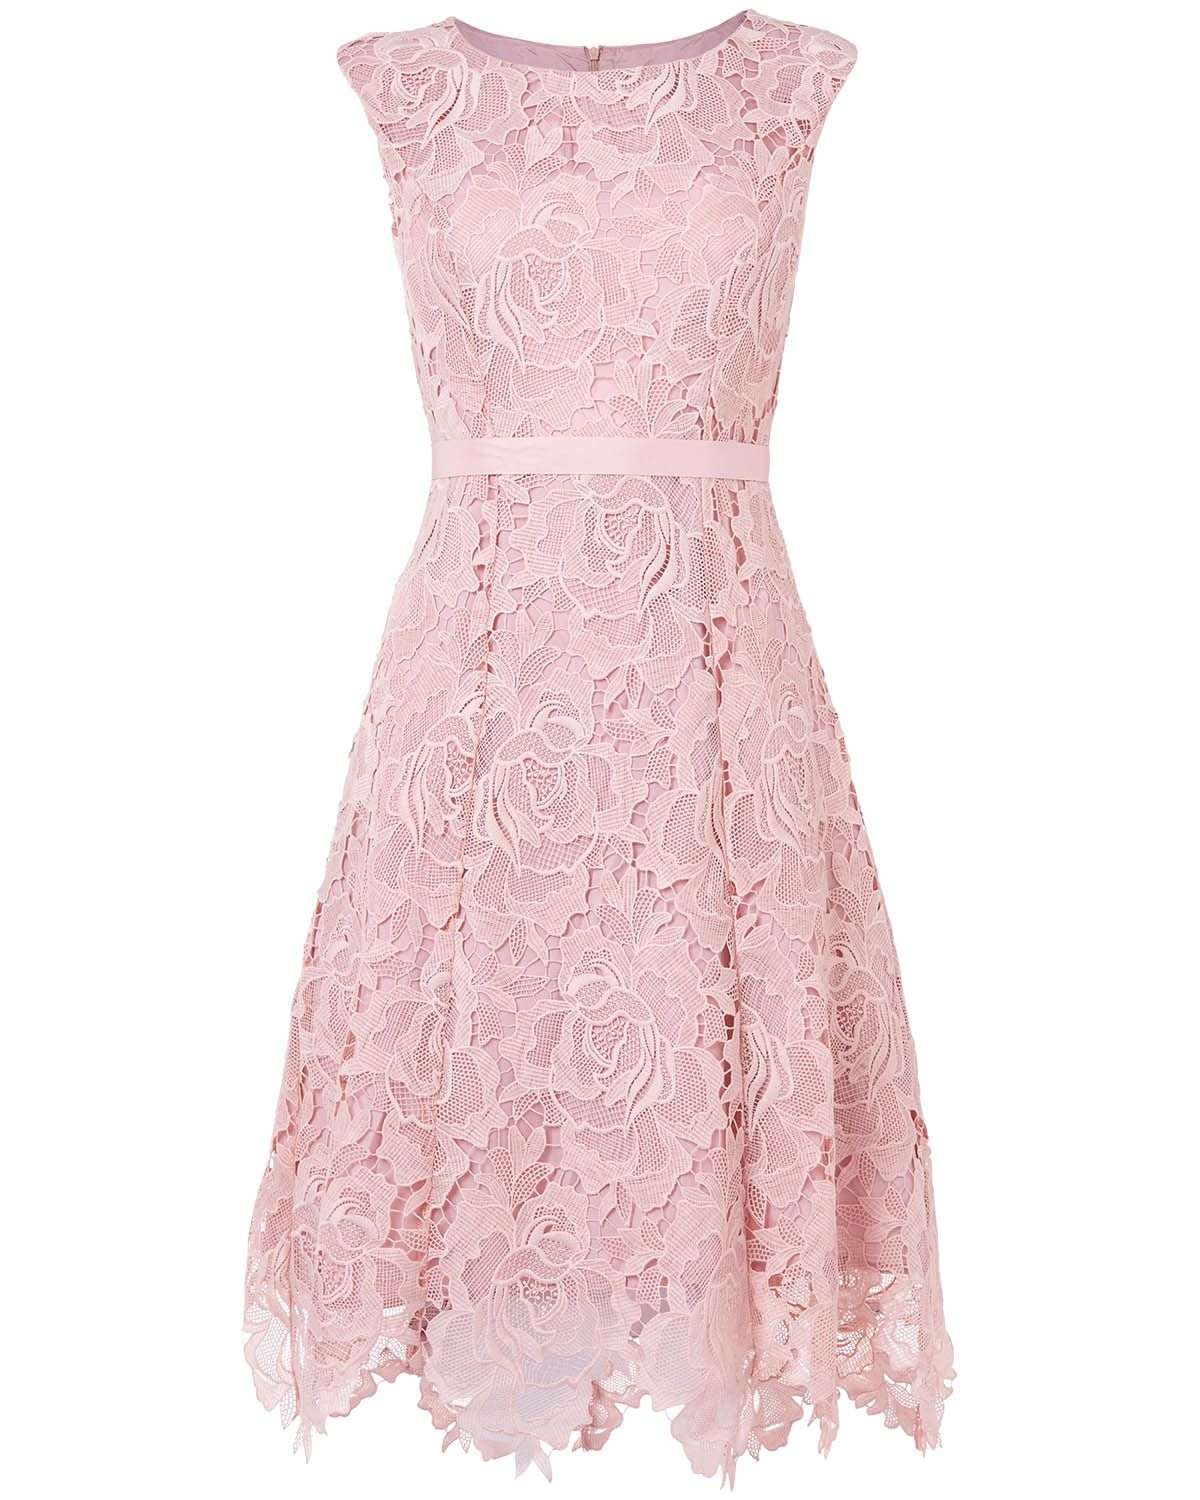 mother of the bride | Pink Rose Lace Fit and Flare Dress | Phase ...